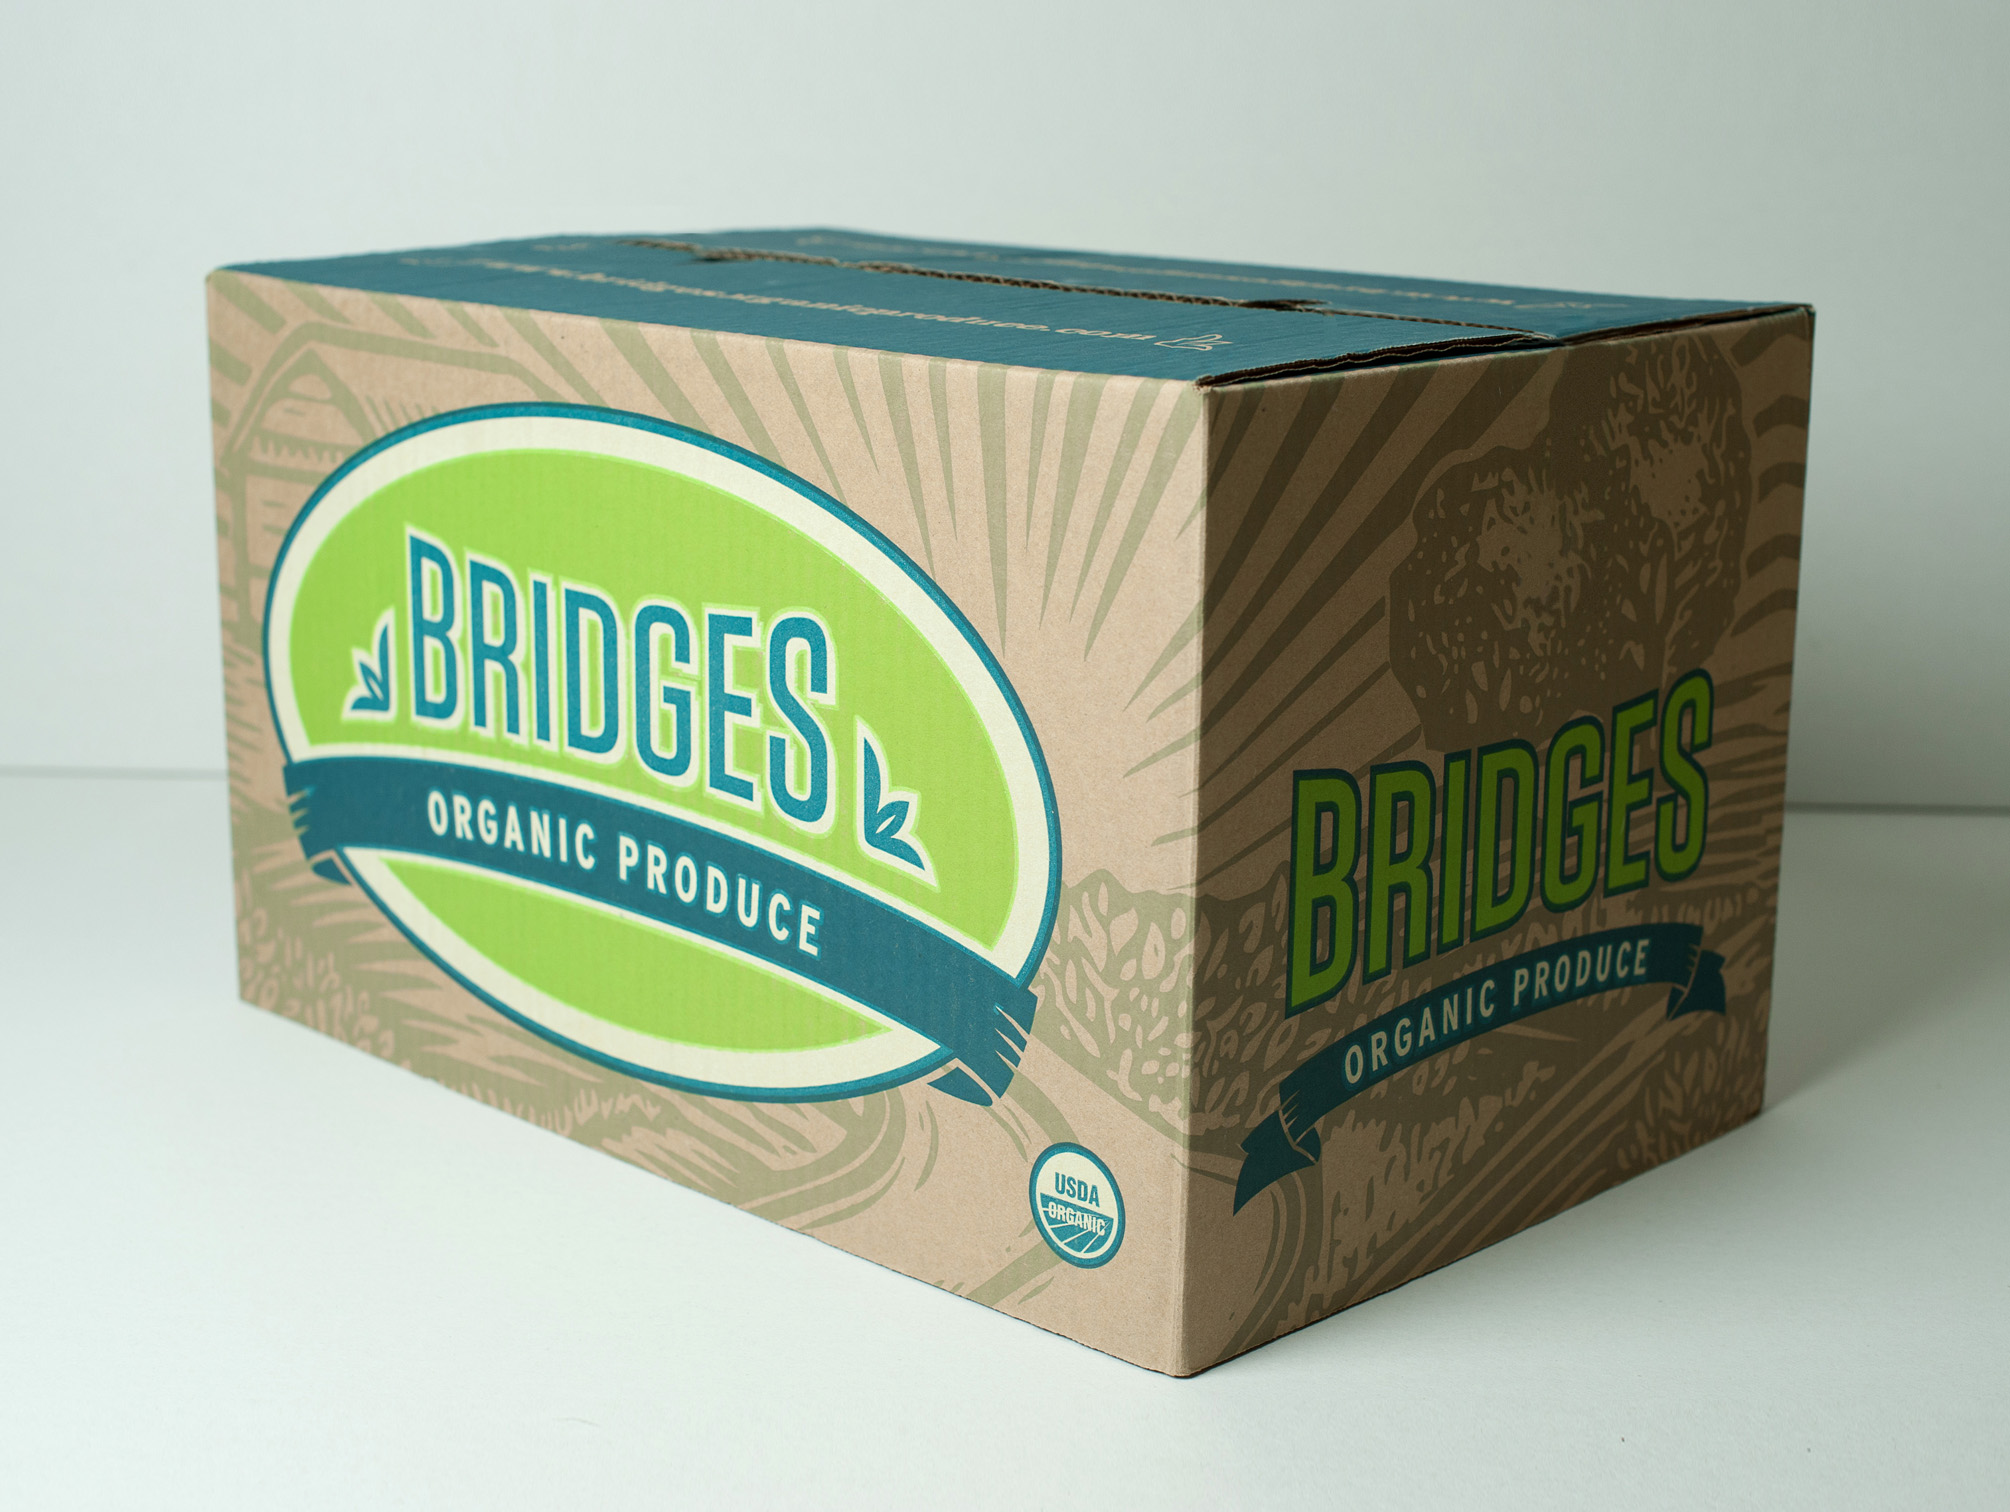 Design and direction by Jessica Raley while employed at  Blind Renaissance